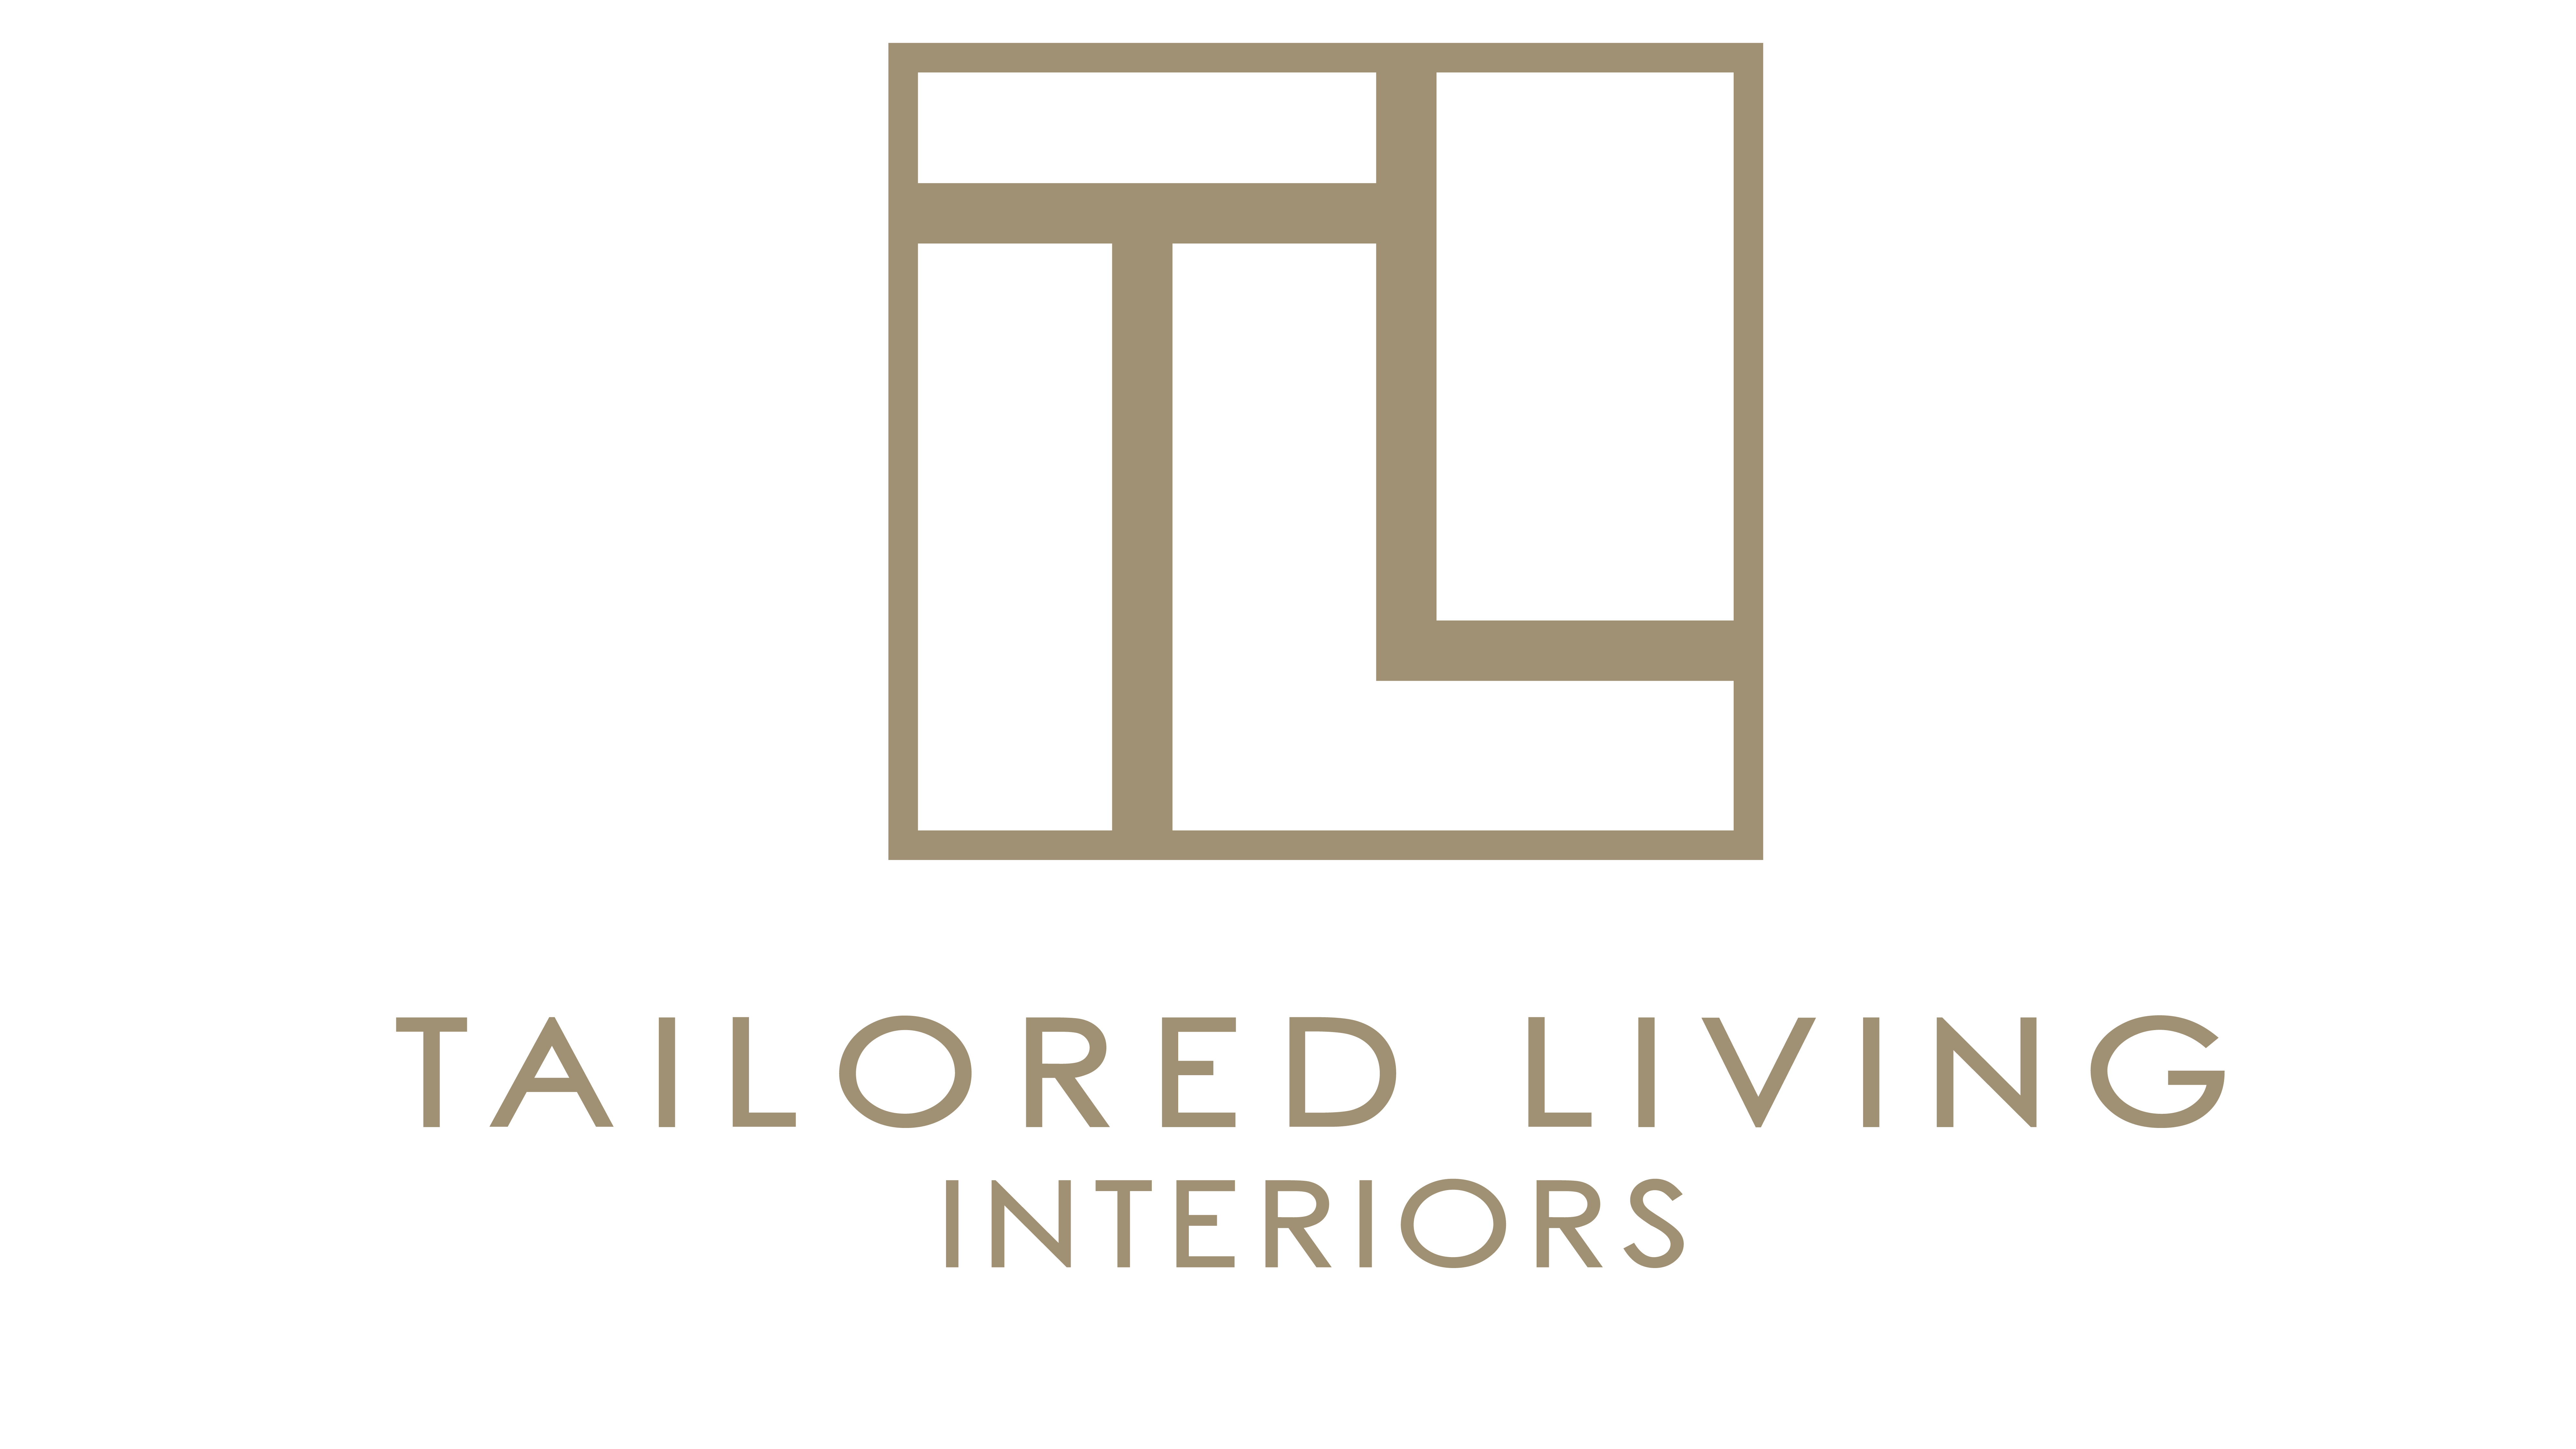 Tailored Living Interiors